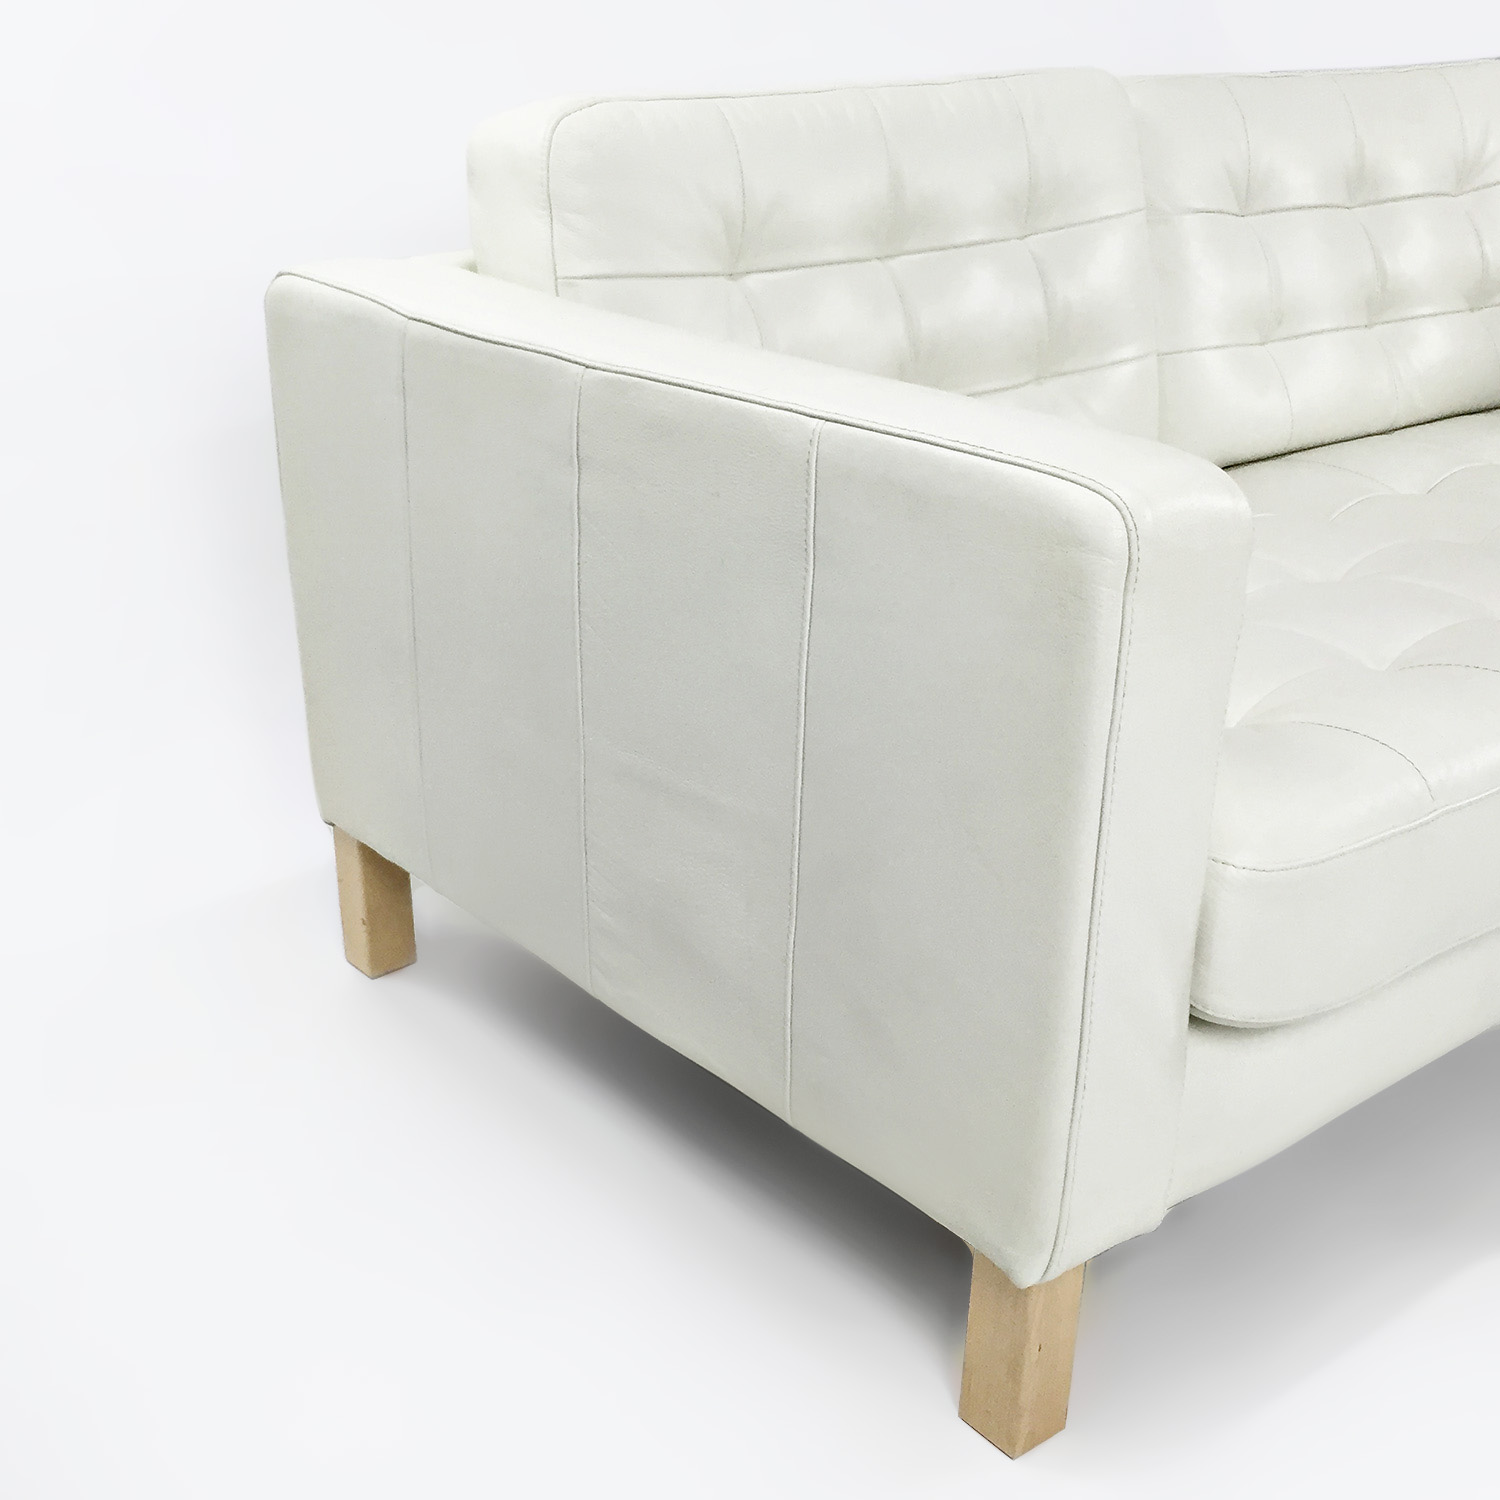 Ikea White Leather Couch Sofas: IKEA White Leather Couch / Sofas